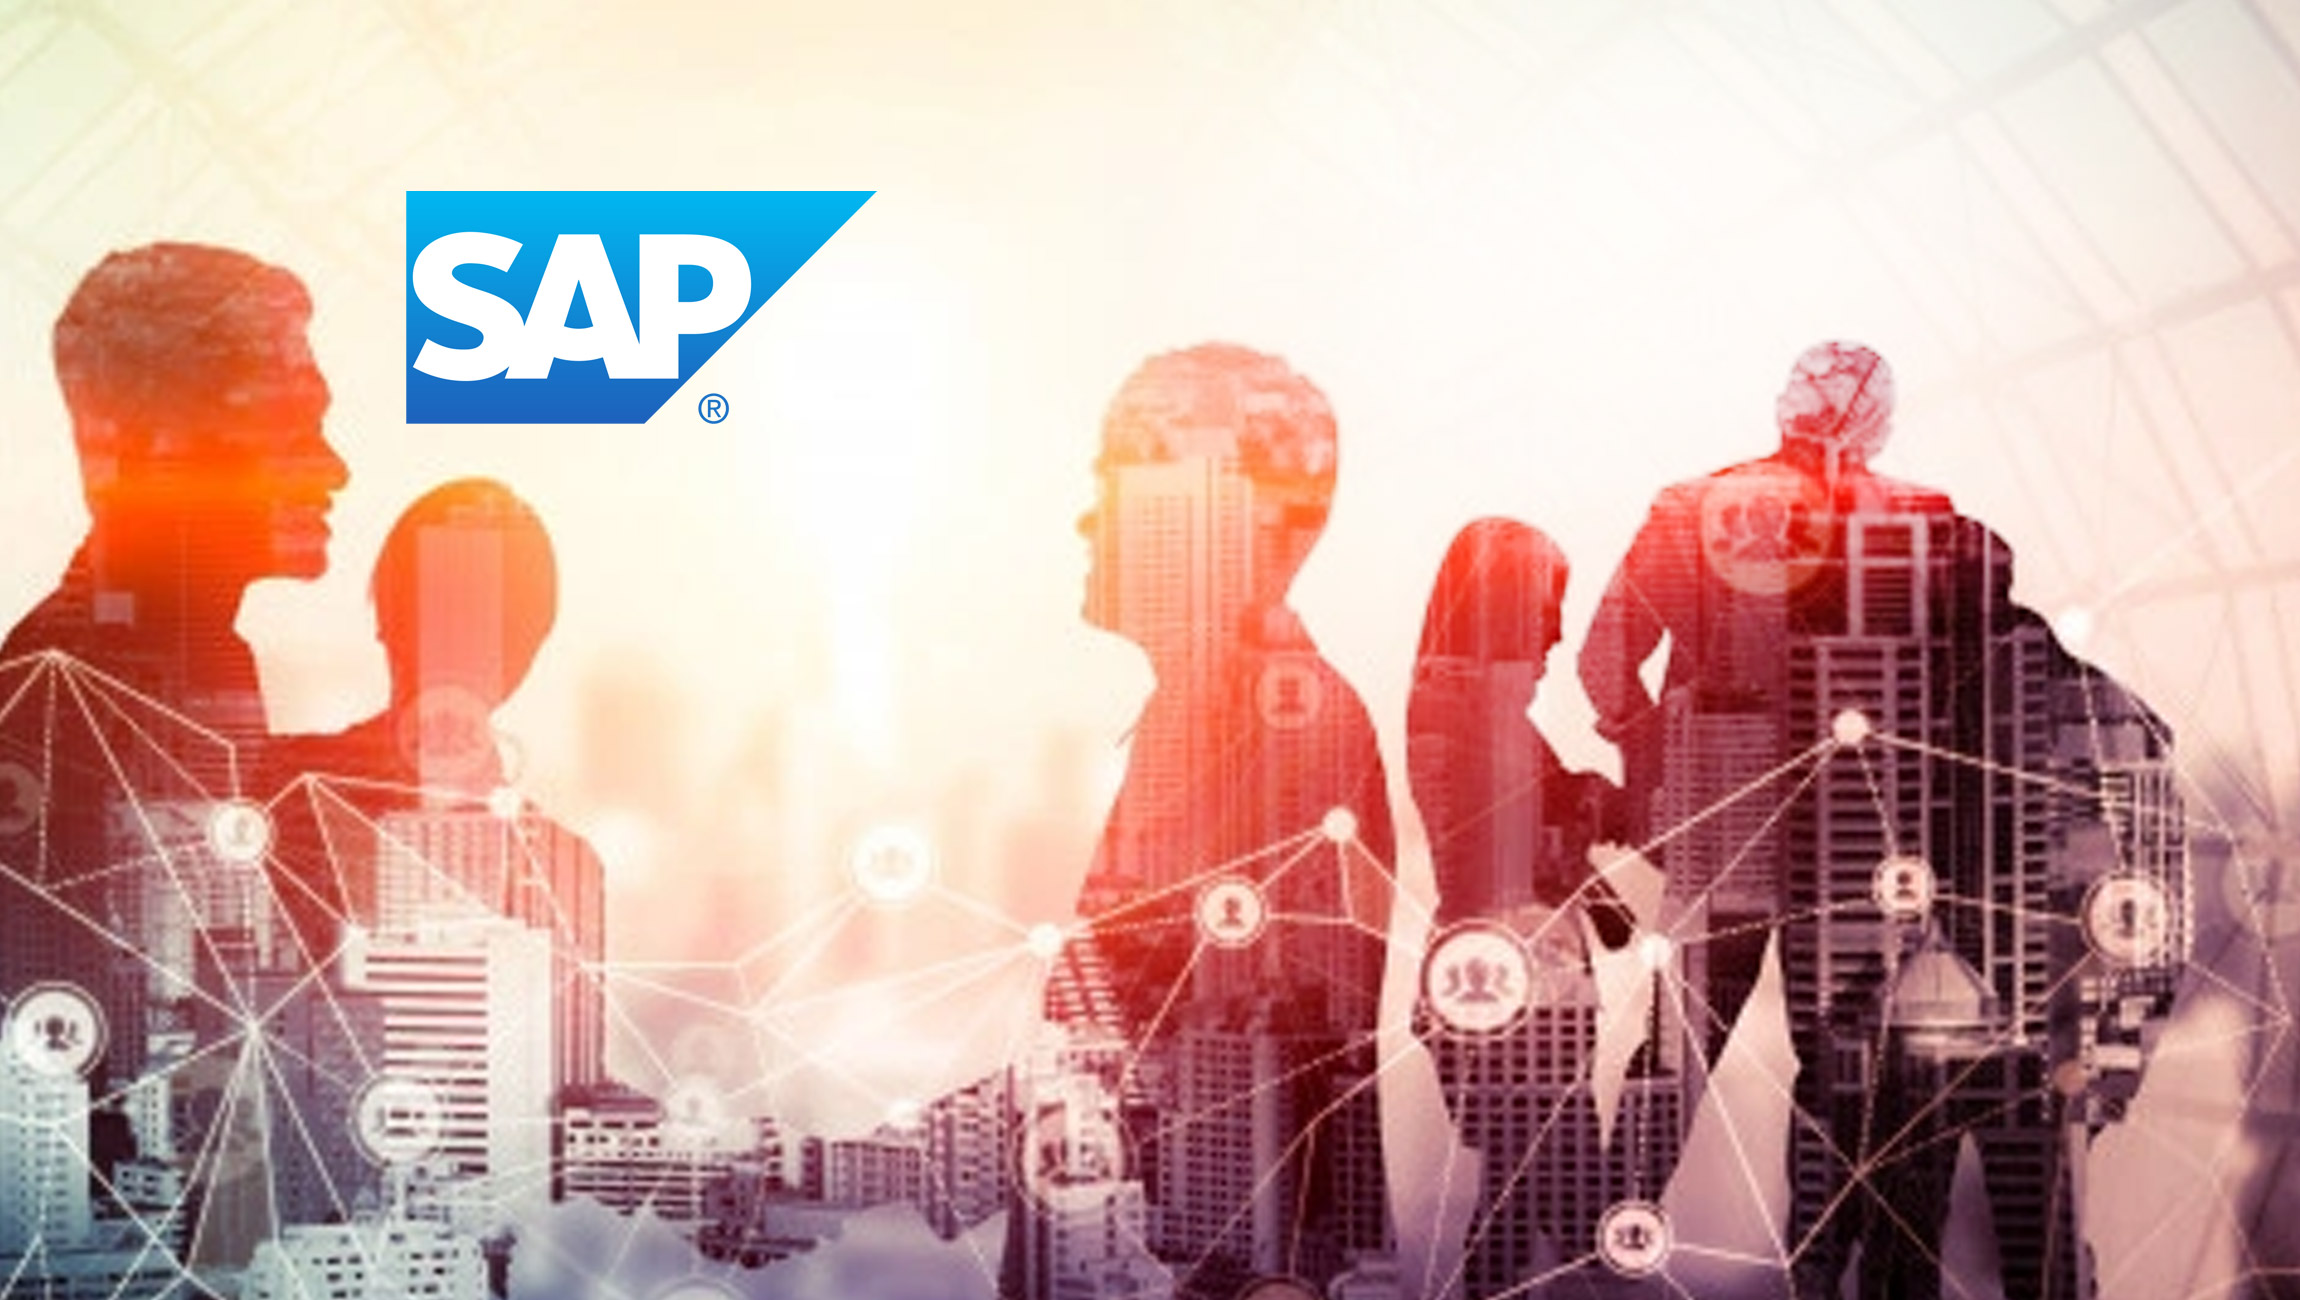 SAP Joins World Business Council for Sustainable Development to Innovate in Global Decarbonization Effort